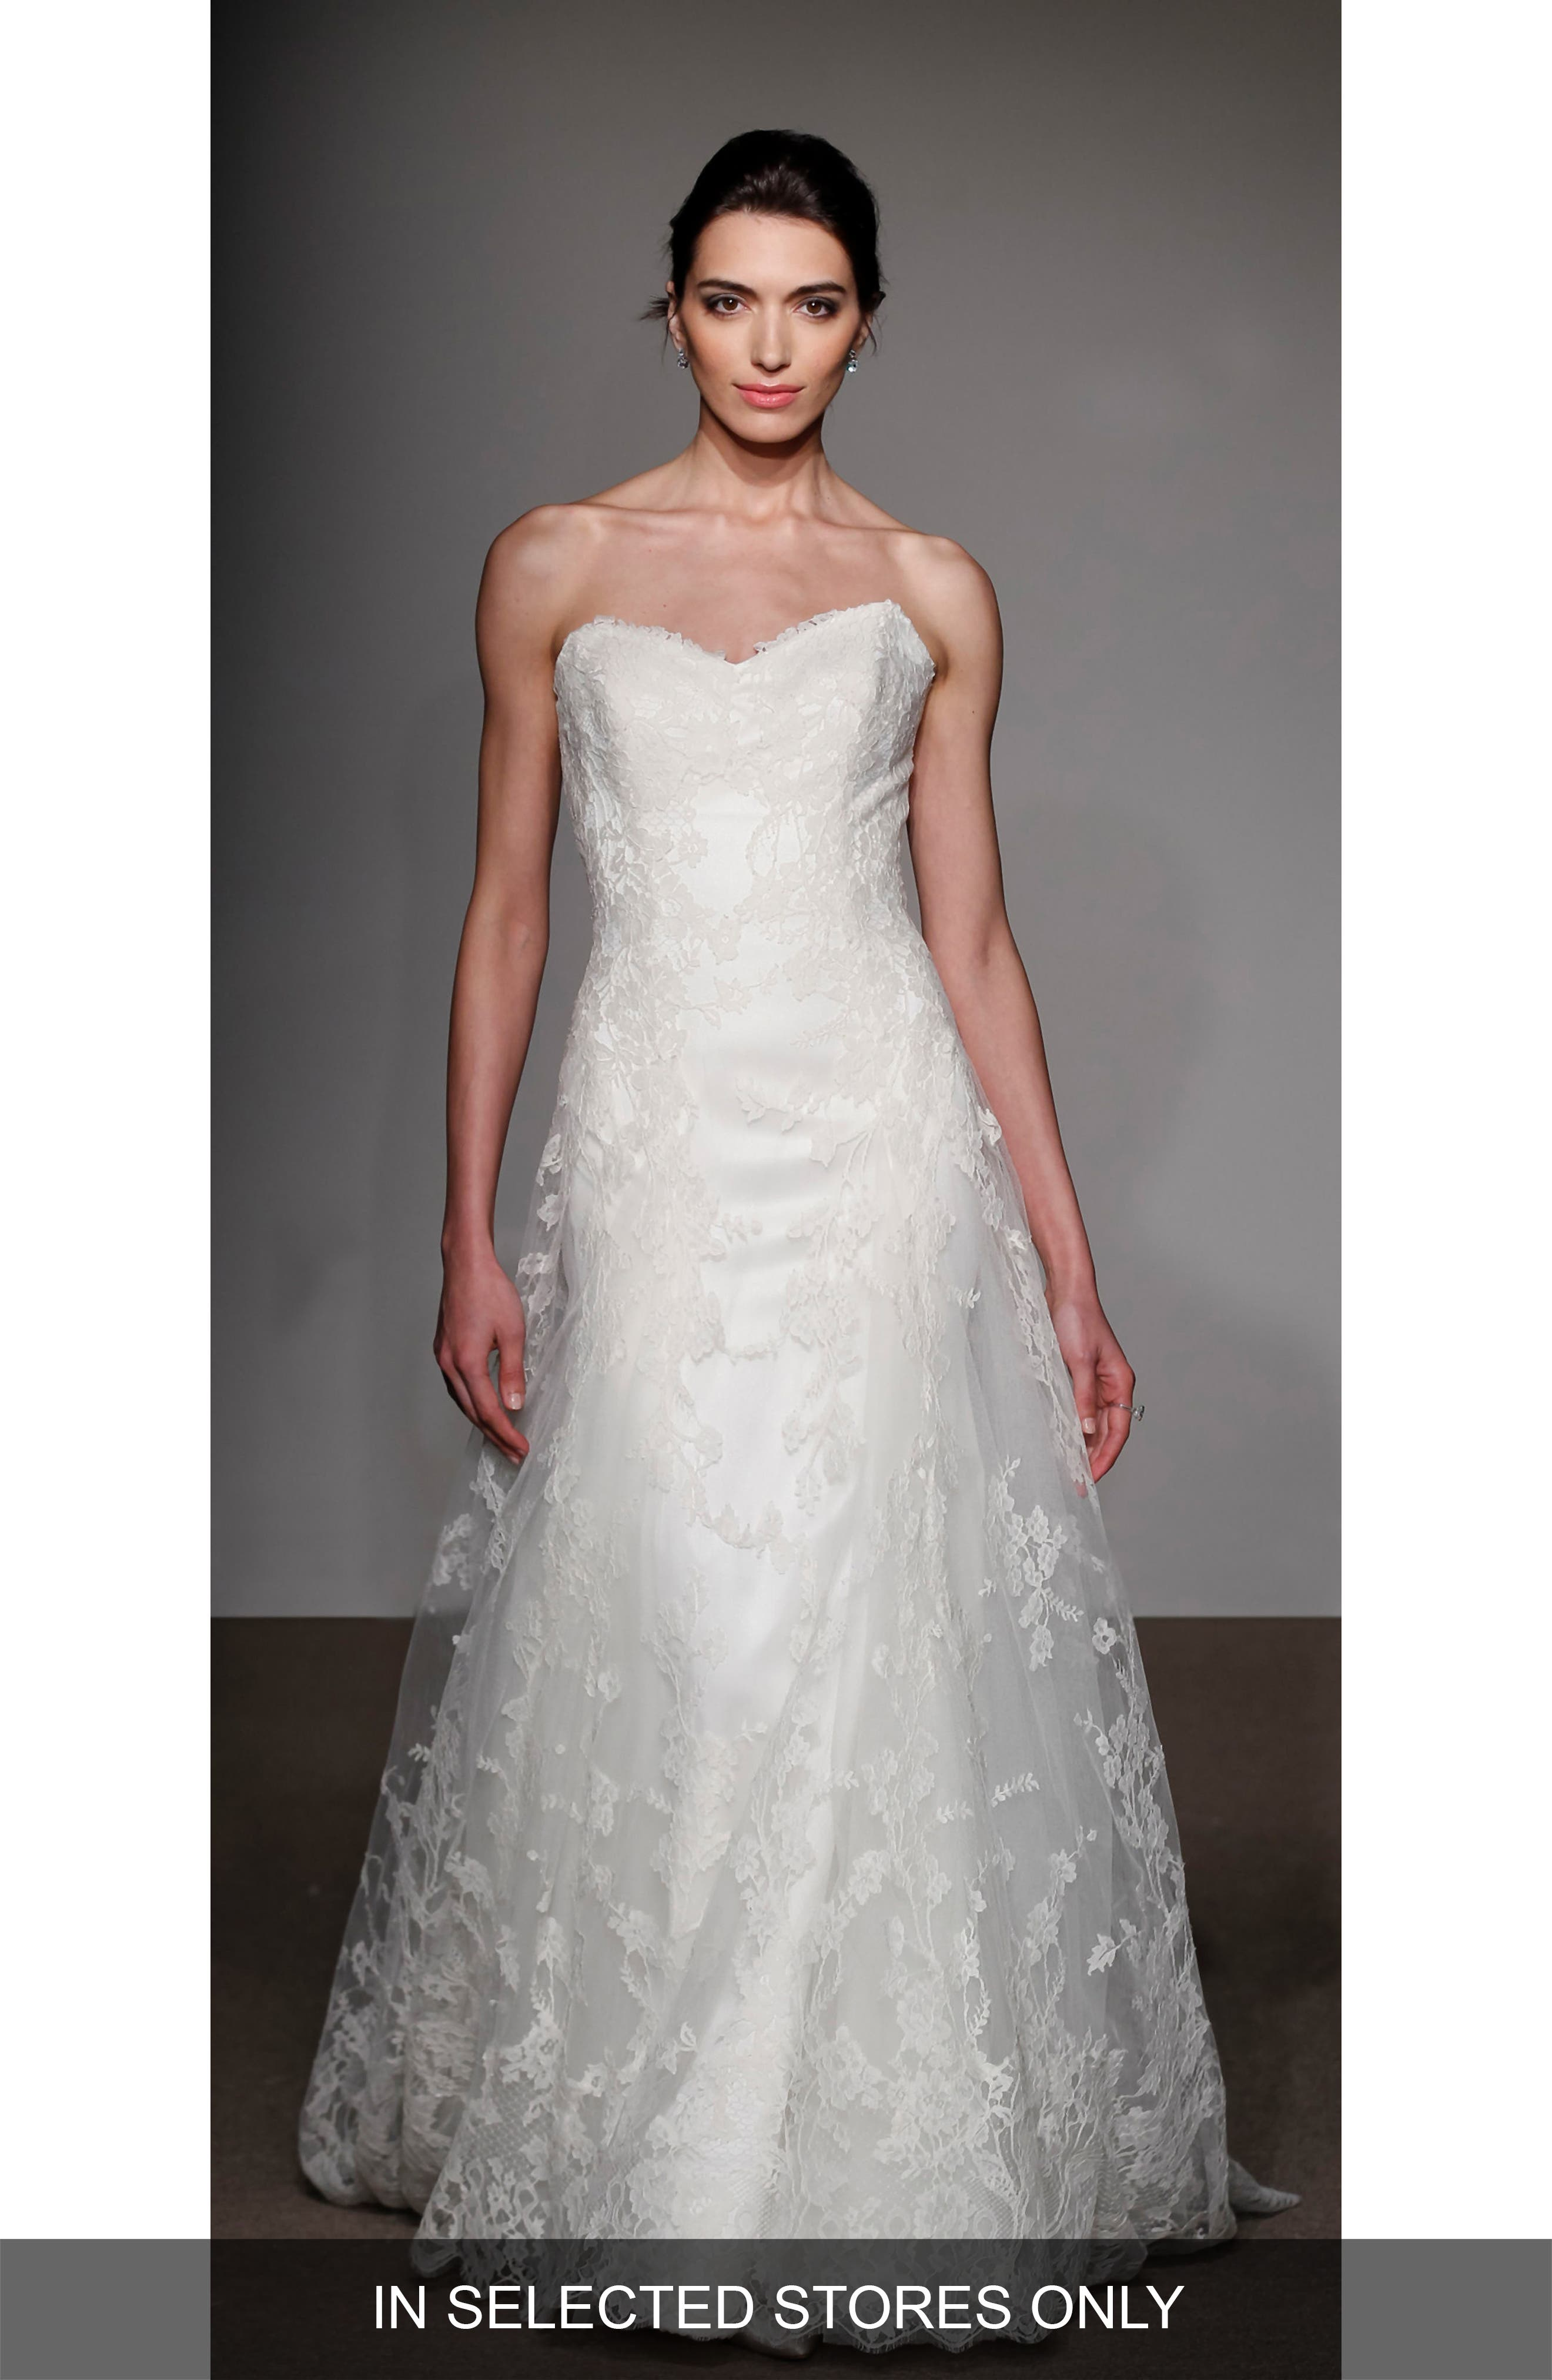 Alternate Image 1 Selected - Anna Maier Couture Liliane Strapless Lace Gown (Regular & Plus Size)